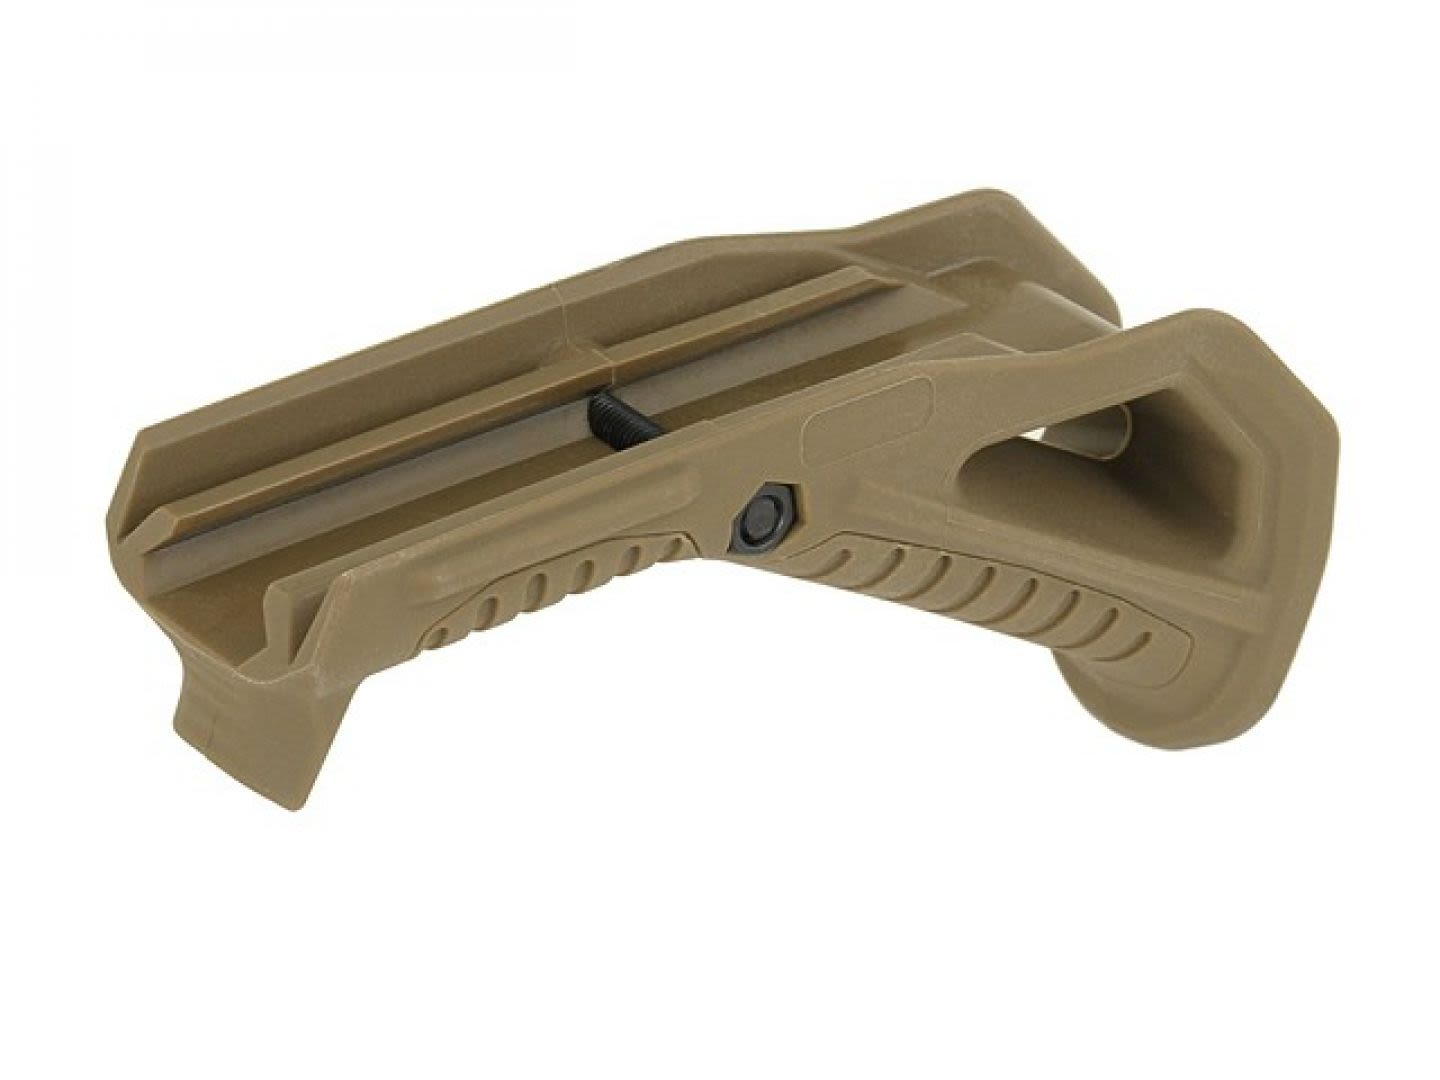 Afg fore support grip DE